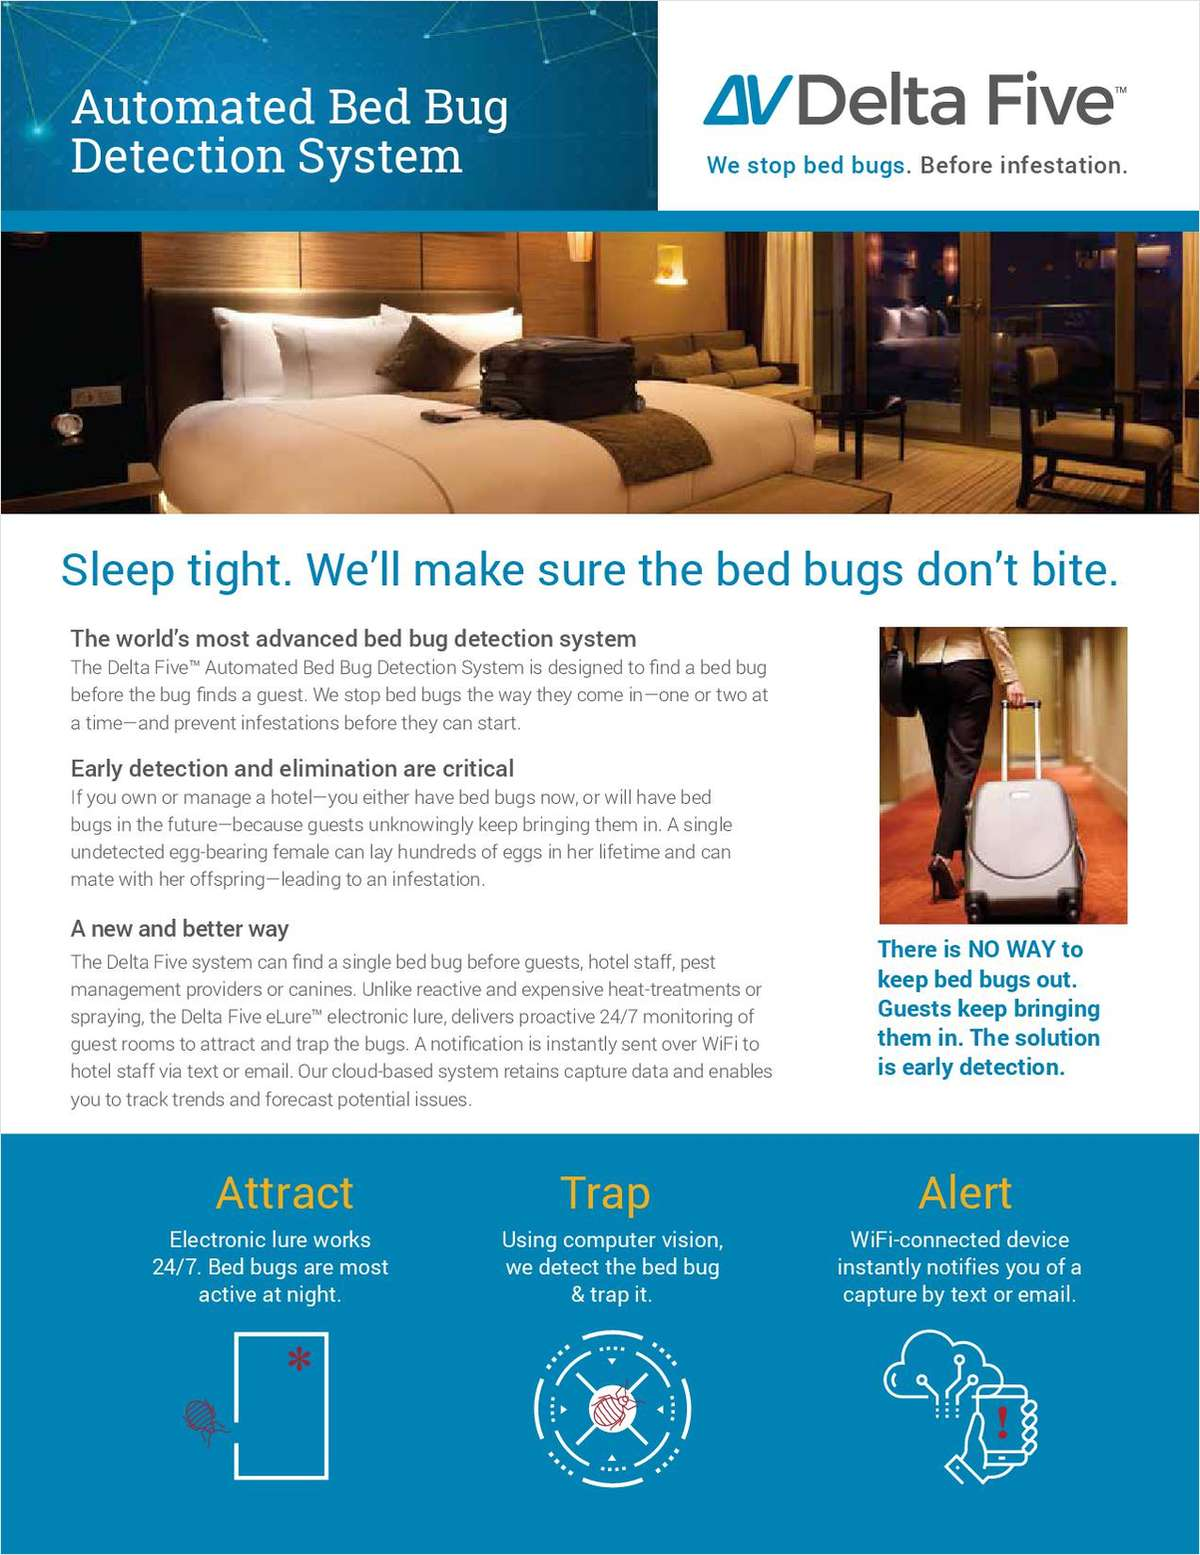 This tech solution for bed bugs should be found in every hotel